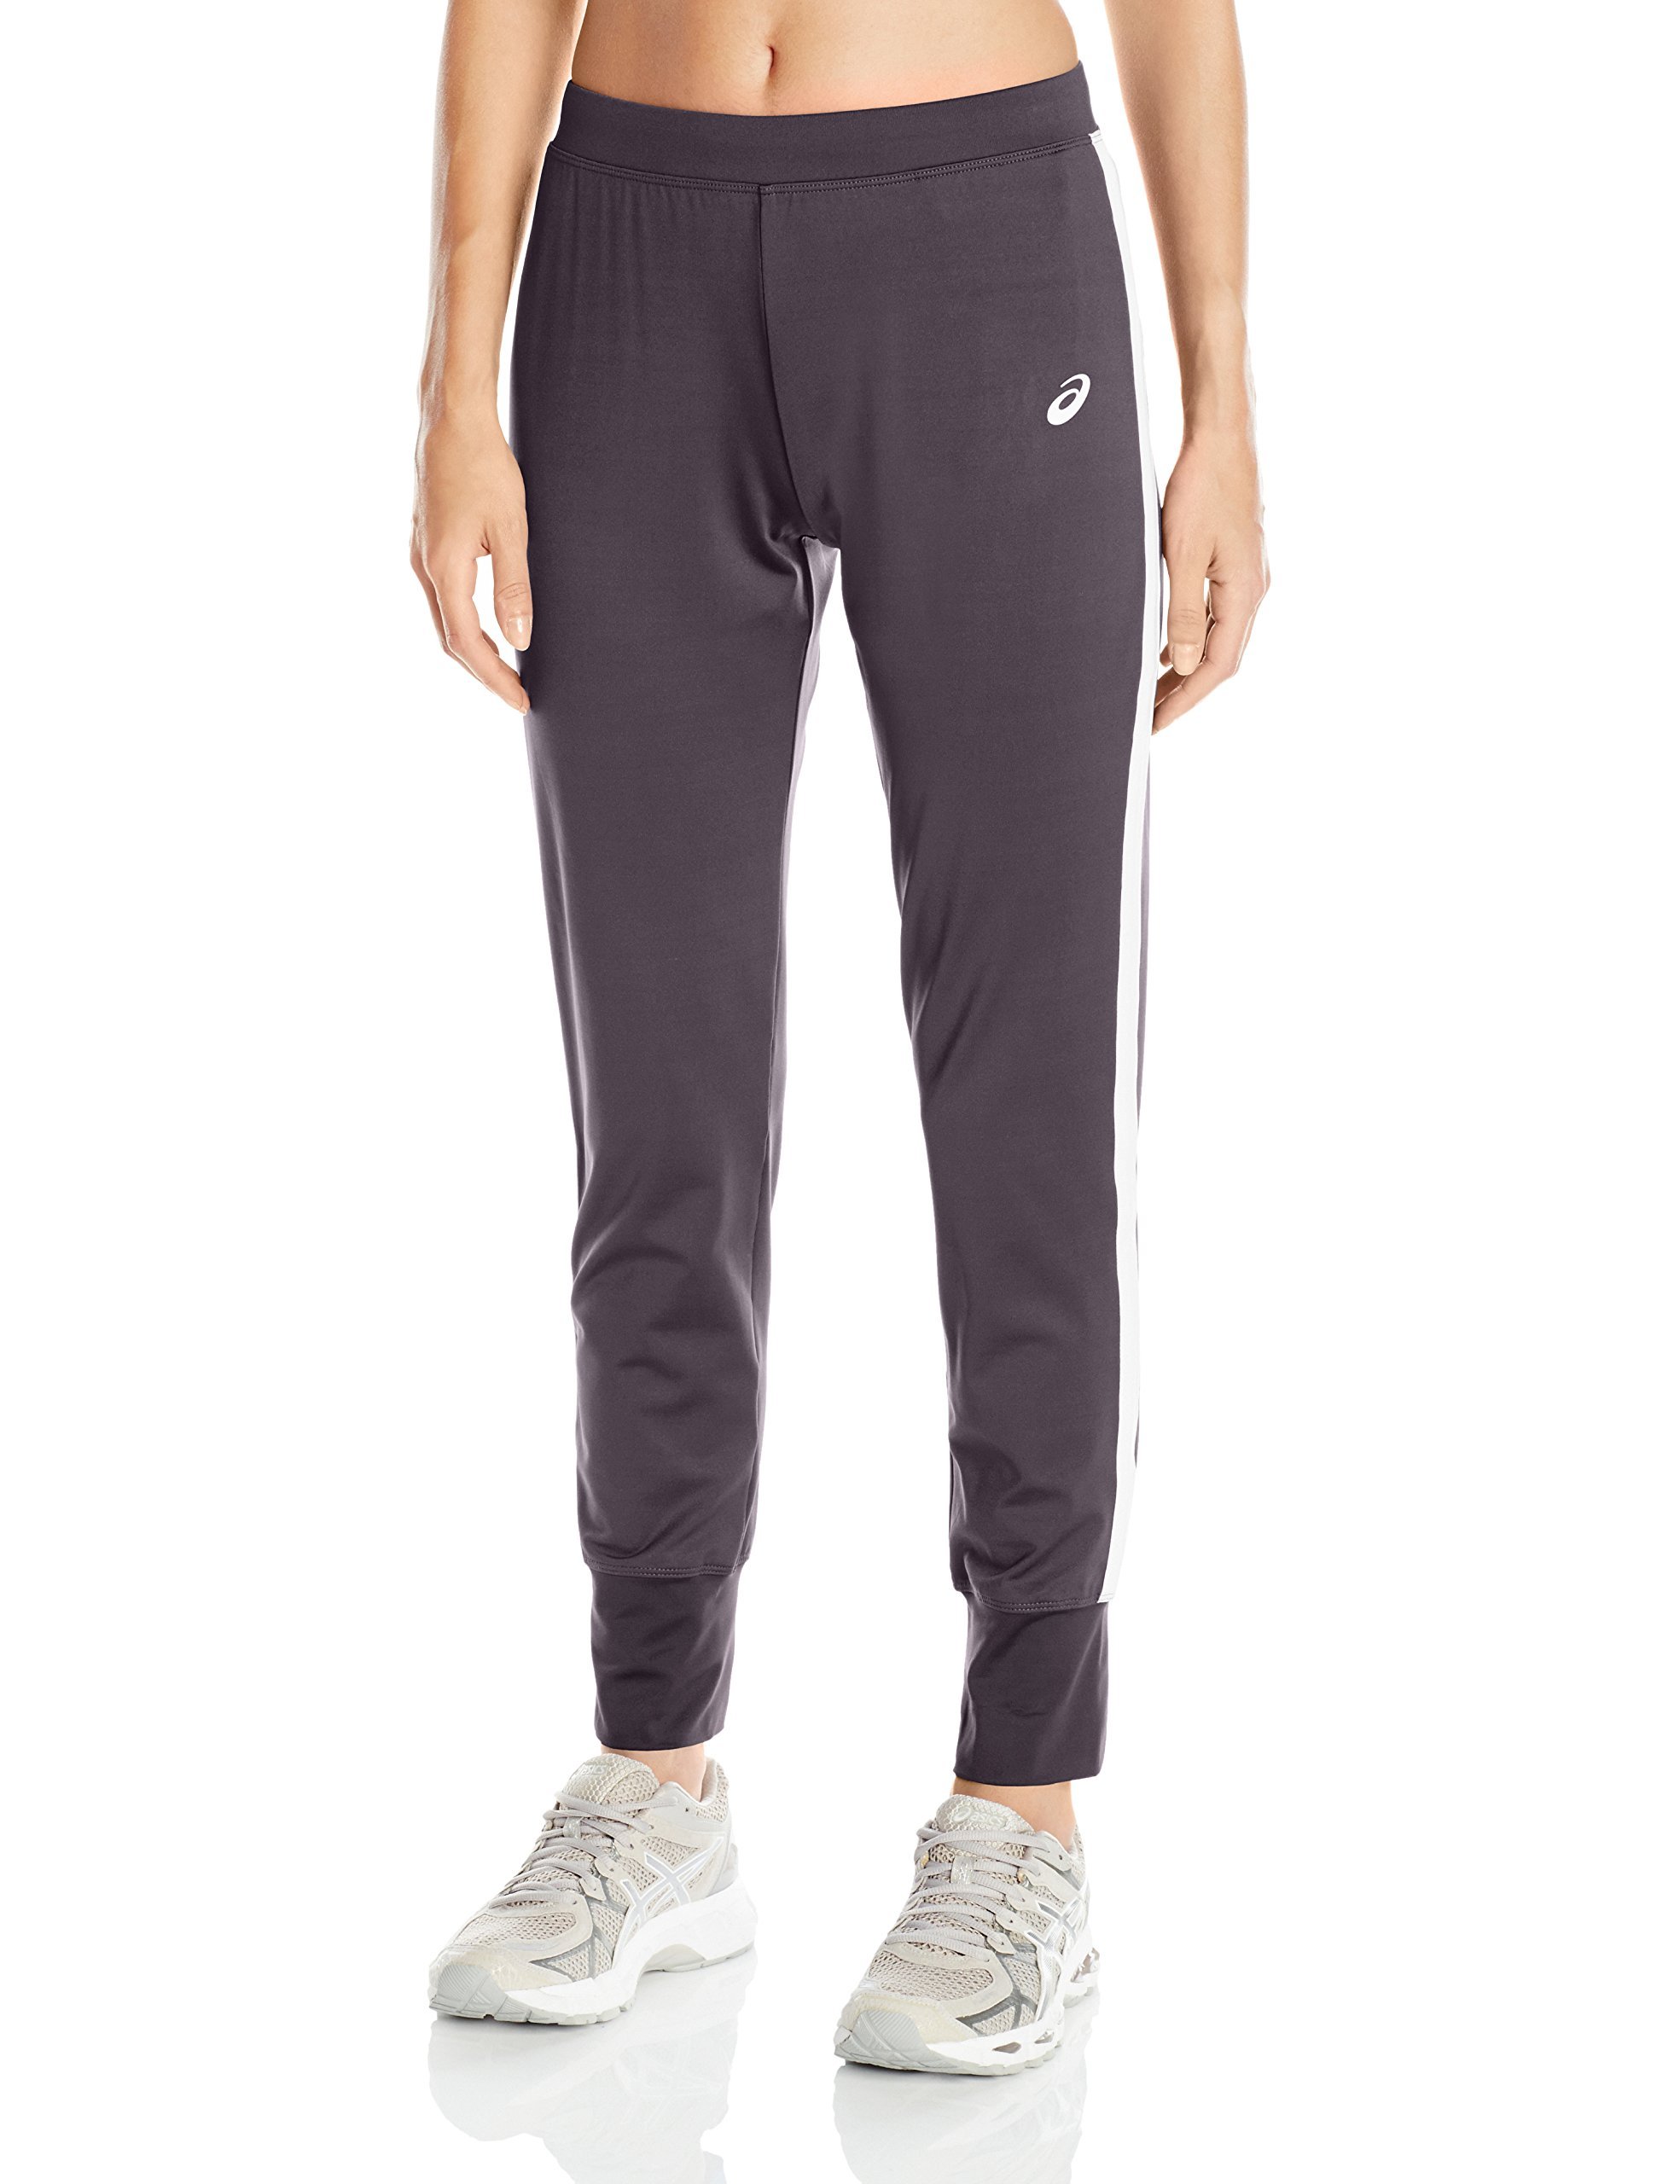 ASICS Women's Lani Performance Pant, Steel Grey/White, X-Small by ASICS